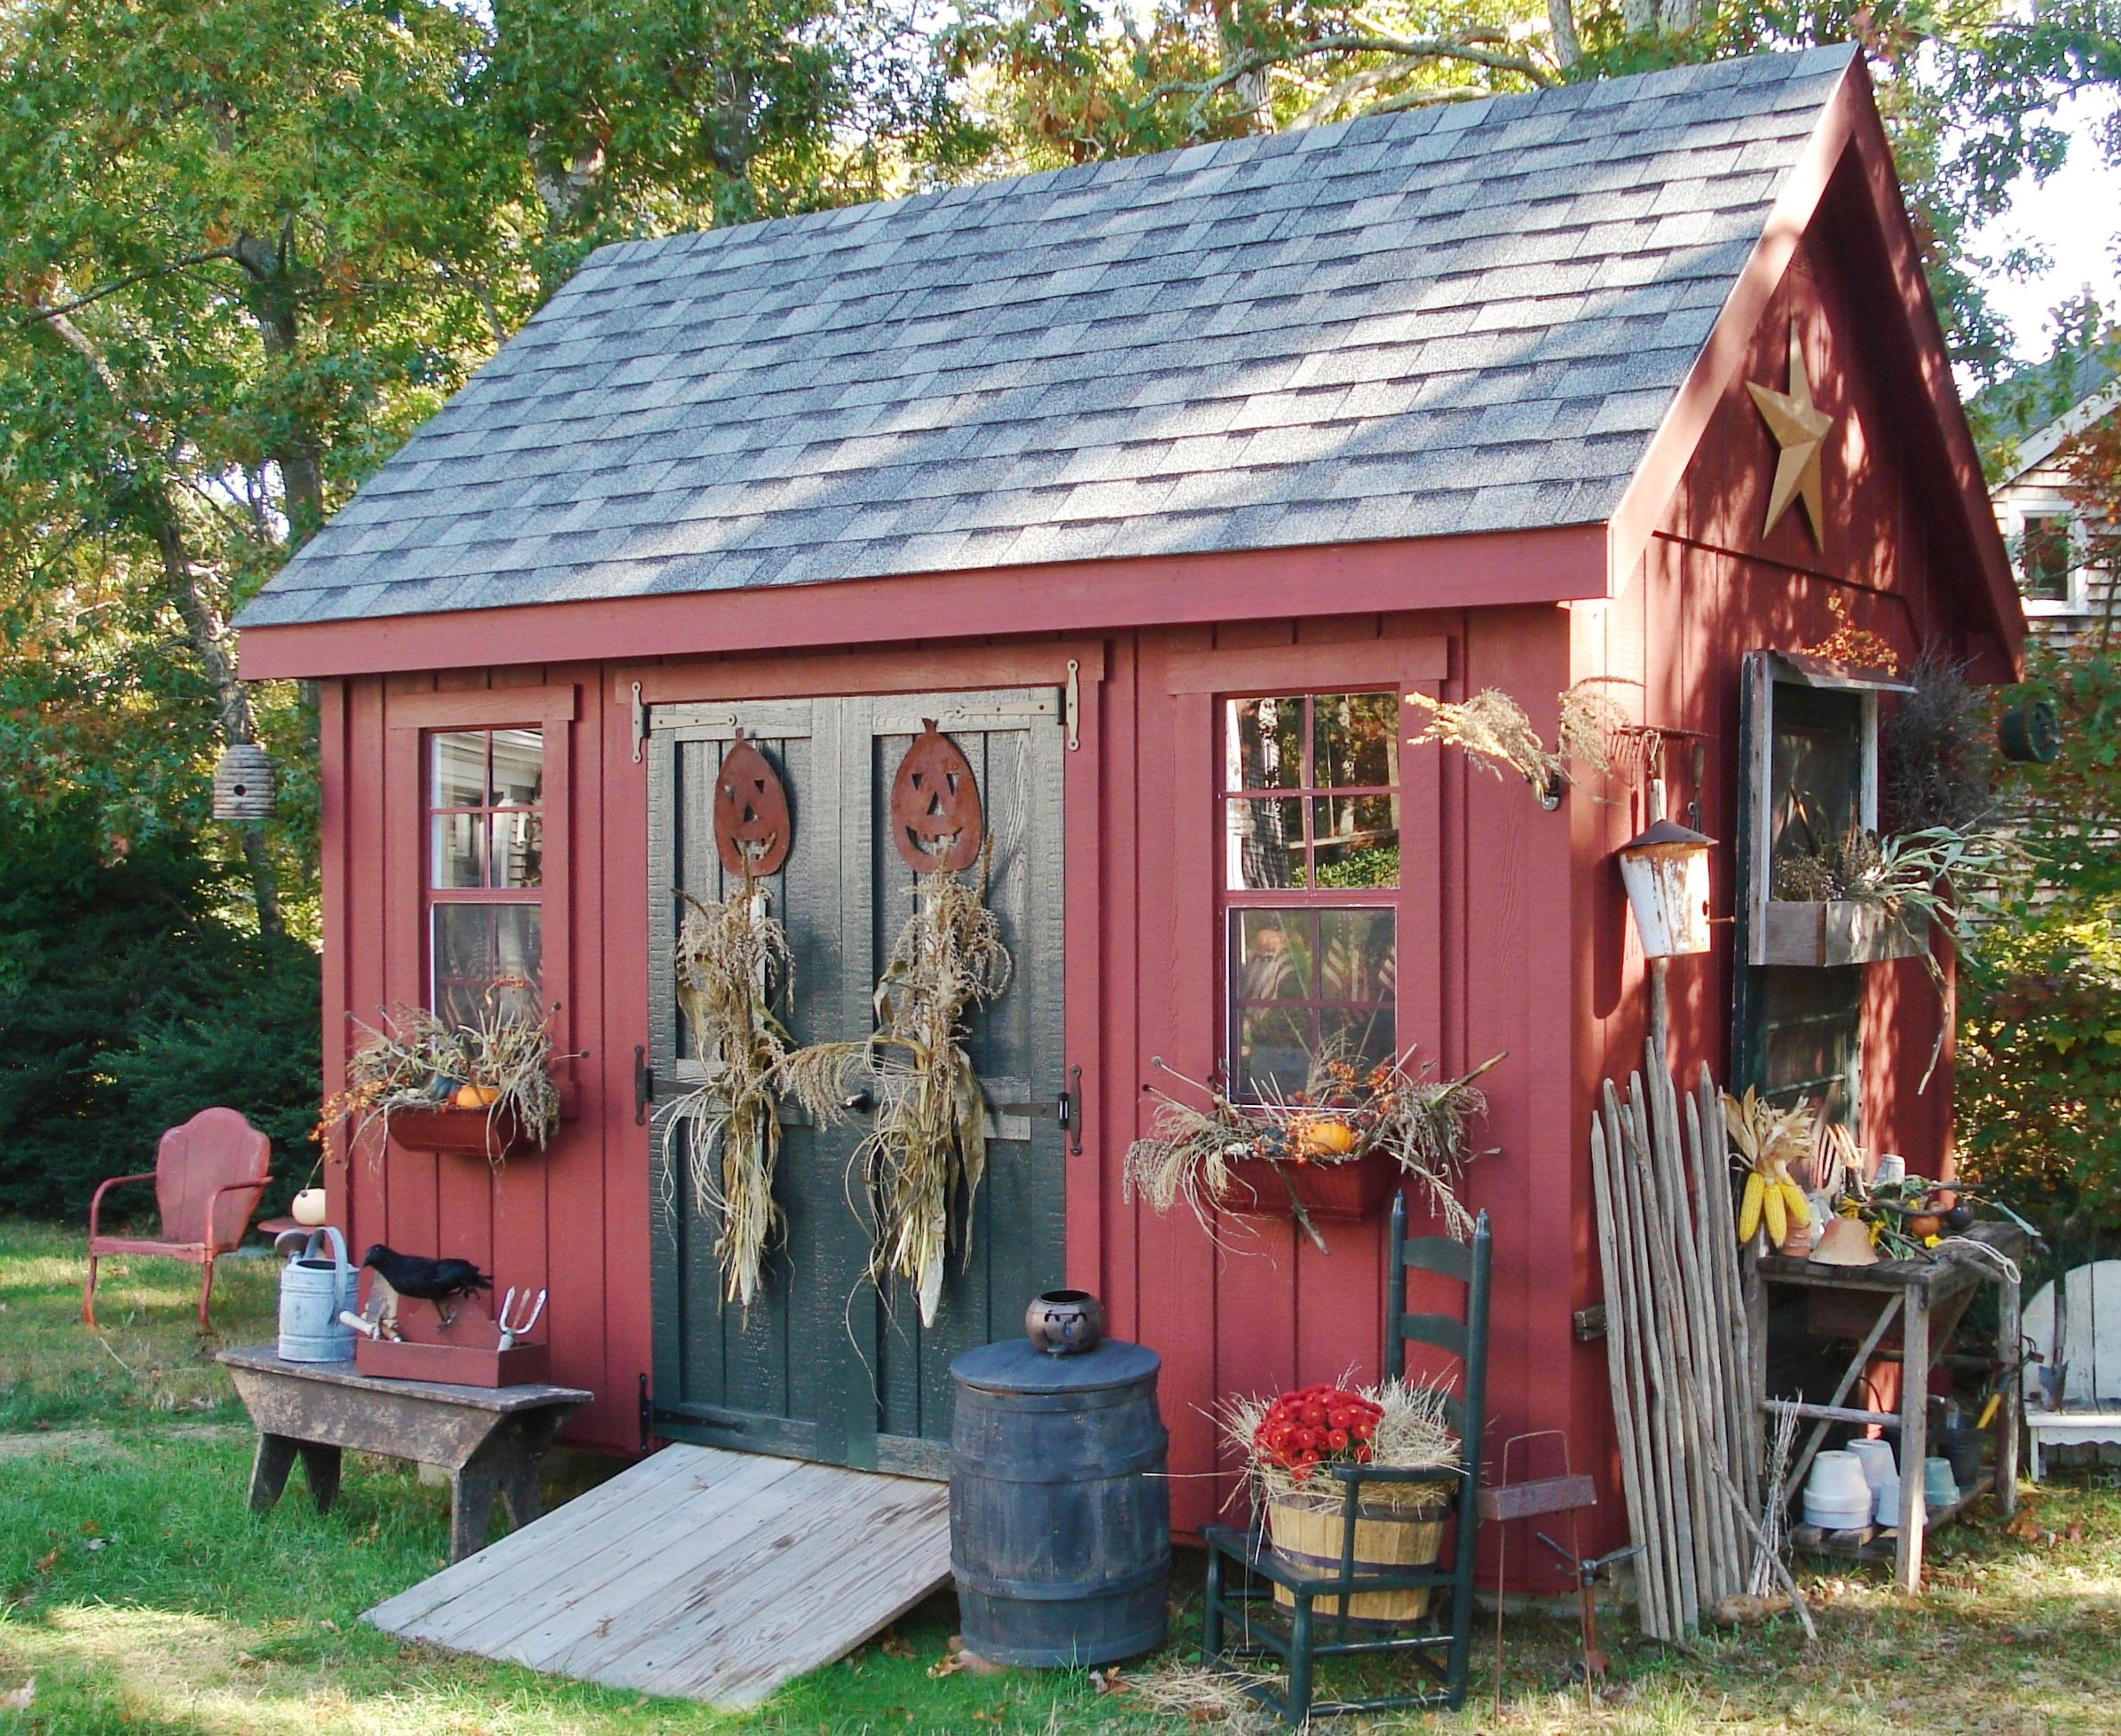 Garden Sheds South Florida concentrate on the landscaping around your garden shed to anchor